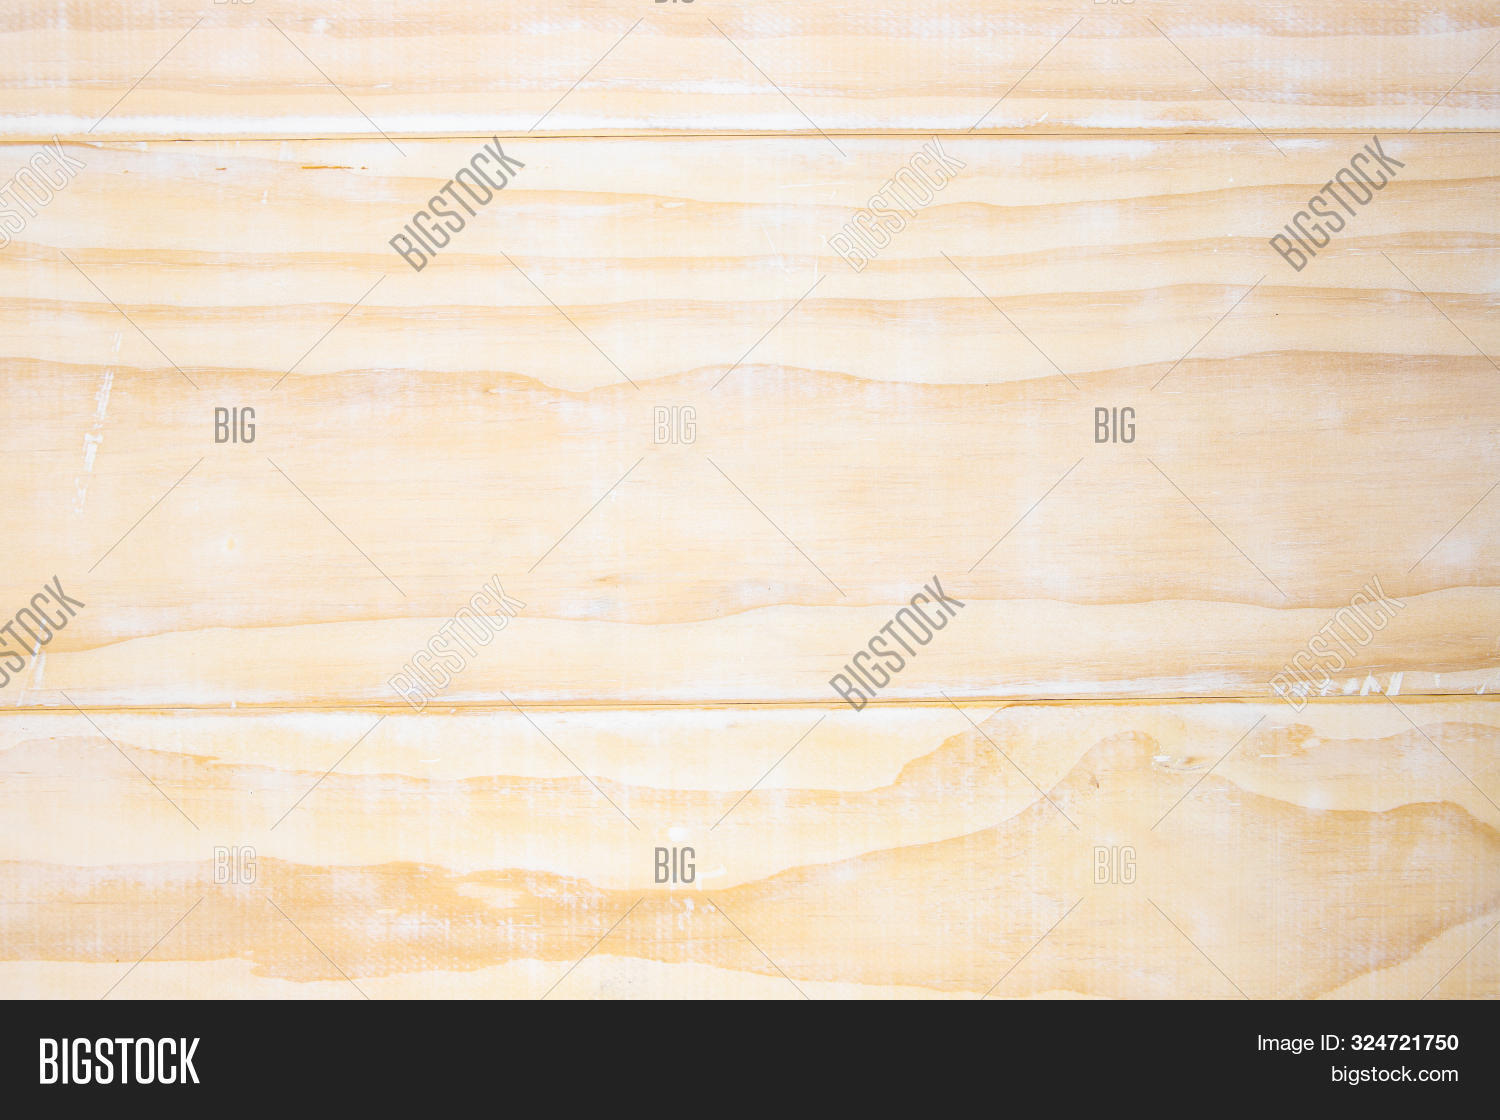 abstract,backdrop,background,board,boho,brown,close-up,closeup,concept,design,desk,distressed,dry,flat,floor,grunge,grungy,hardwood,lay,layer,lumber,material,natural,nature,old,organic,photo,polished,raw,retro,rustic,shabby,structure,surface,table,template,texture,textured,timber,toned,top,tree,view,vintage,wall,weathered,white,wood,wooden